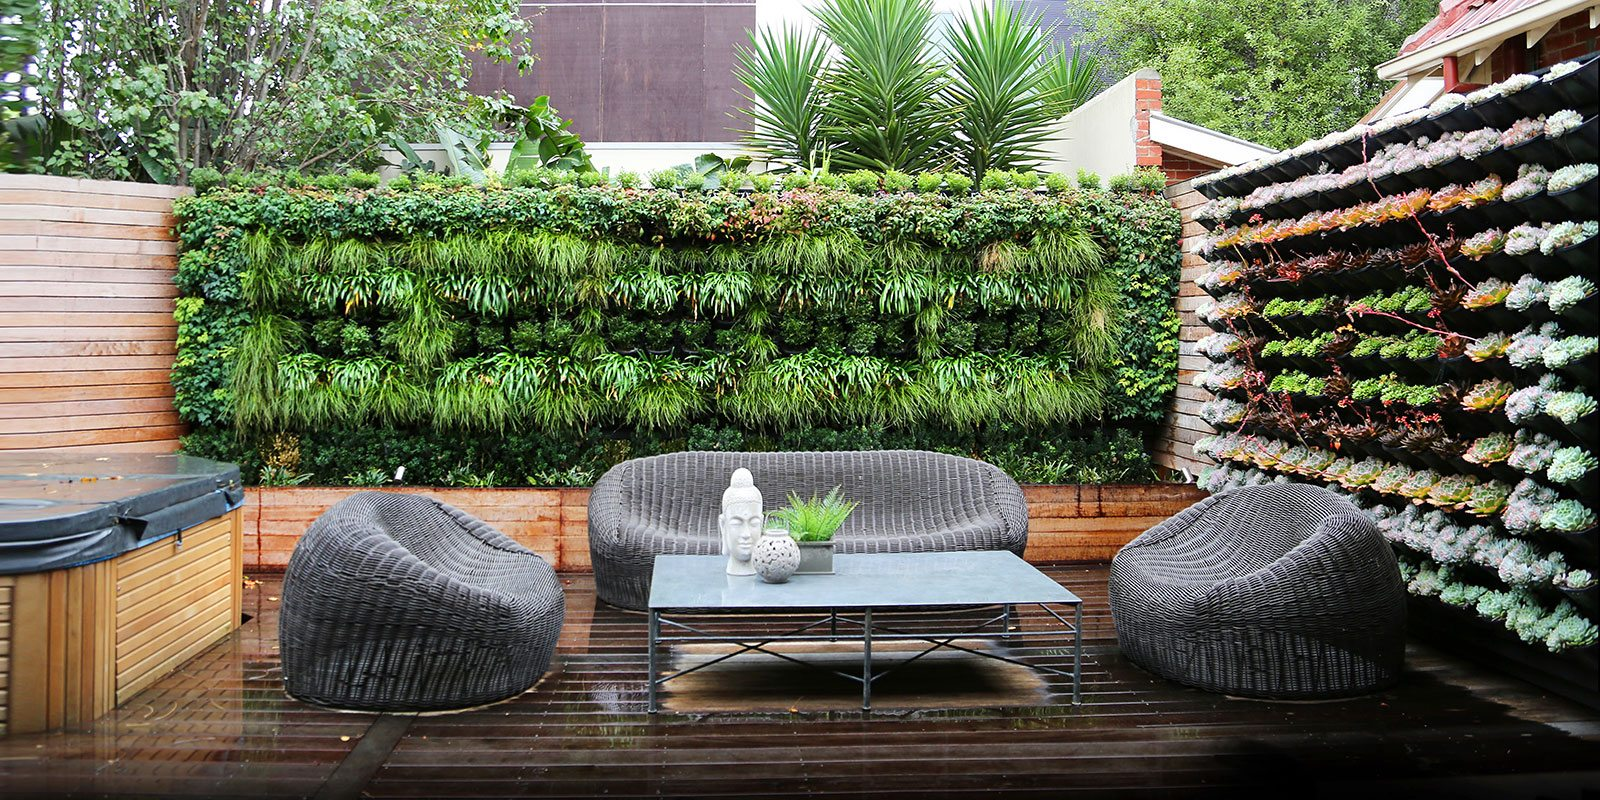 Landscape design vertical wall gardens melbourne for Paredes de jardin decoradas